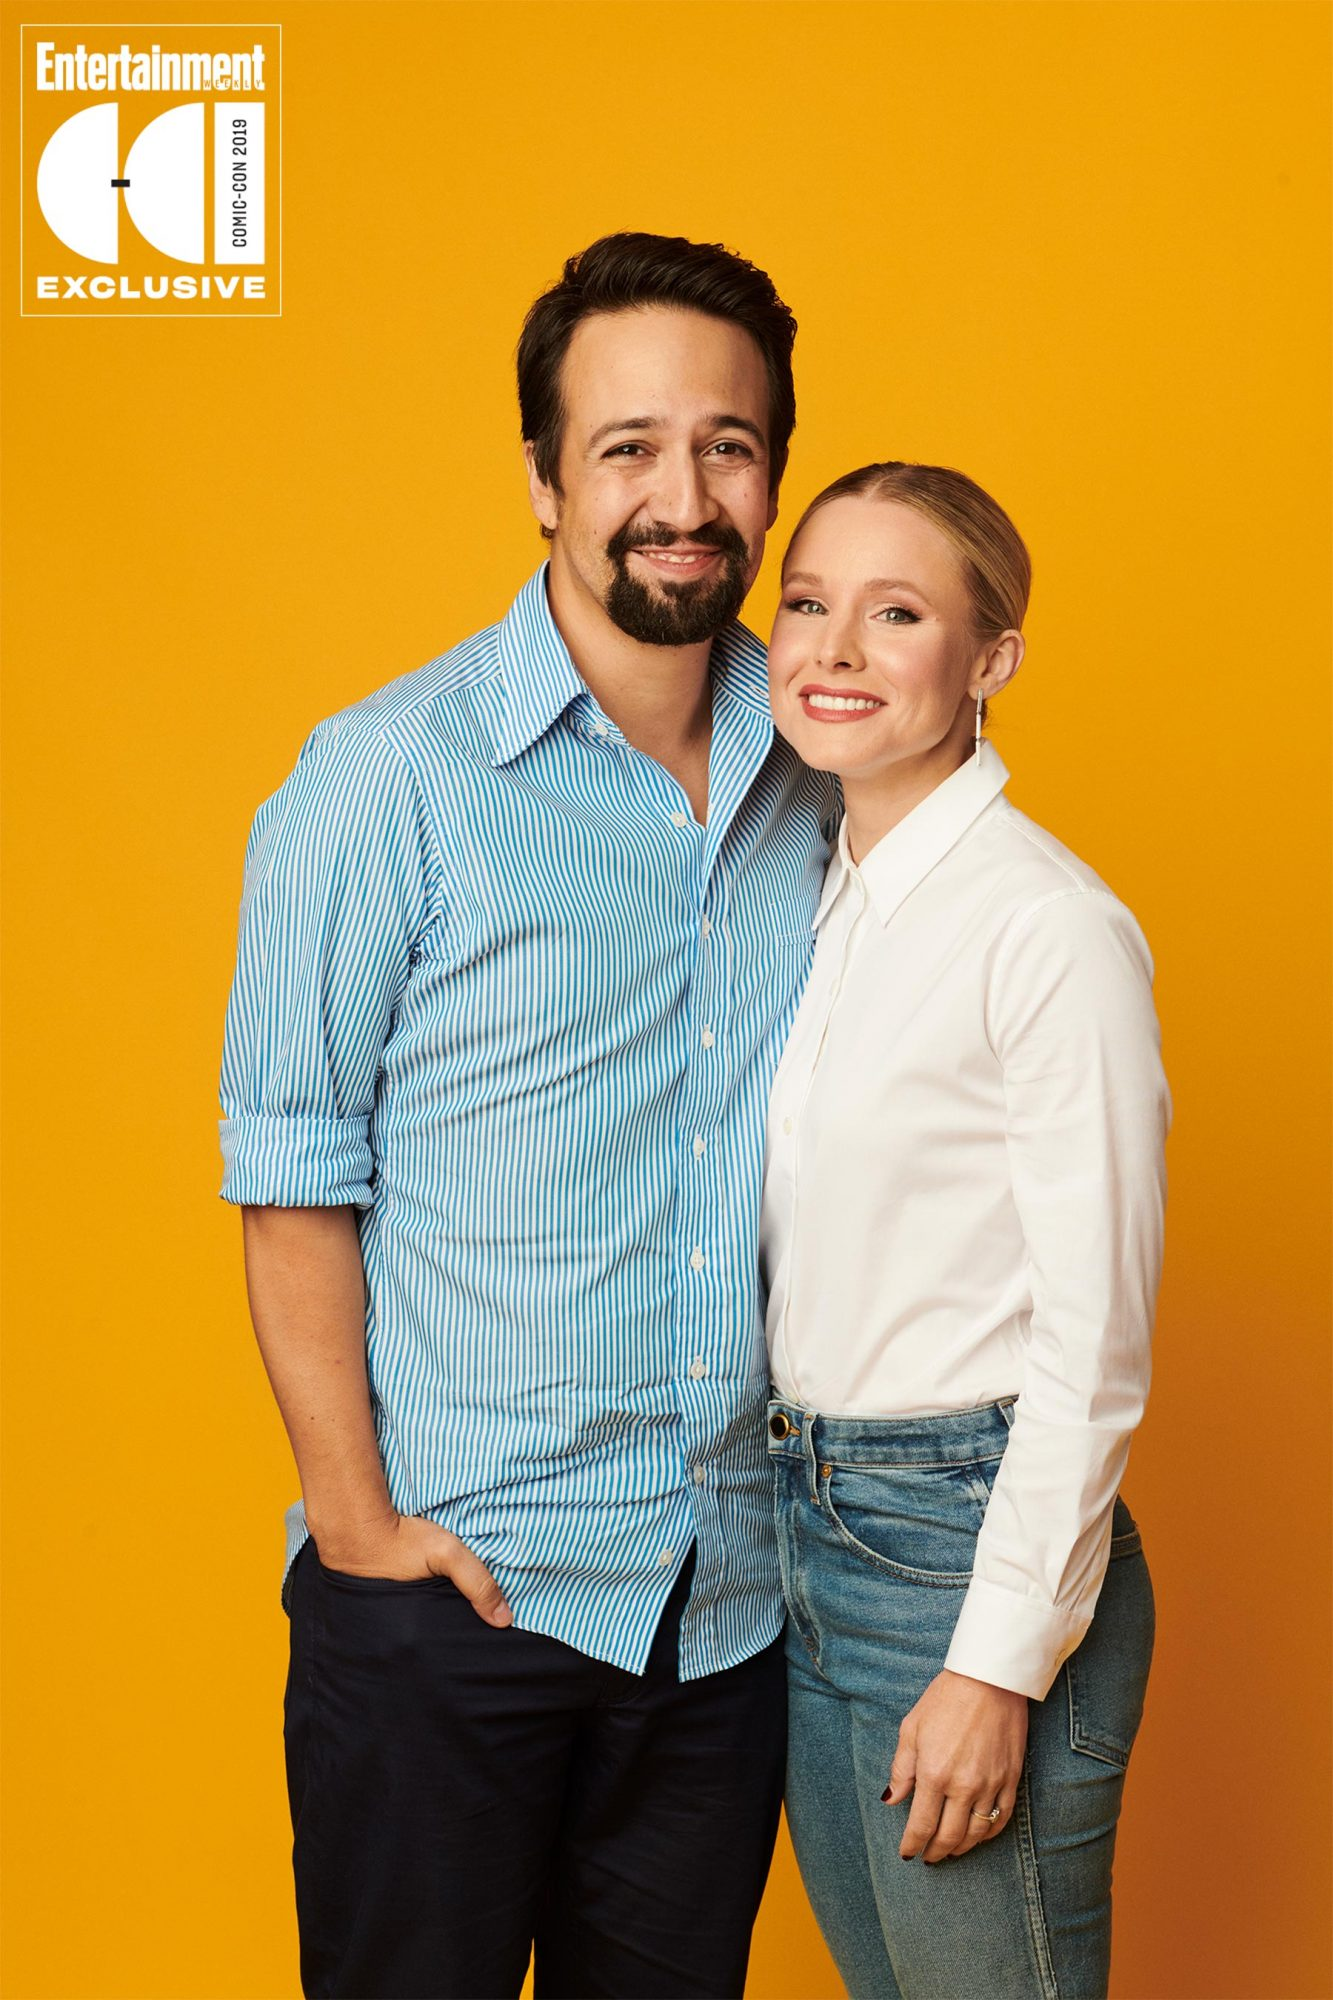 Day 1 - 2019 SDCC - San Diego Comic-con Lin-Manuel Miranda and Kristen Bell photographed in the Entertainment Weekly portrait studio during the 2019 San Diego Comic Con on July 18th, 2019 in San Diego, California. Photographed by: Eric Ray Davidson Pictured: Lin-Manuel Miranda and Kristen Bell